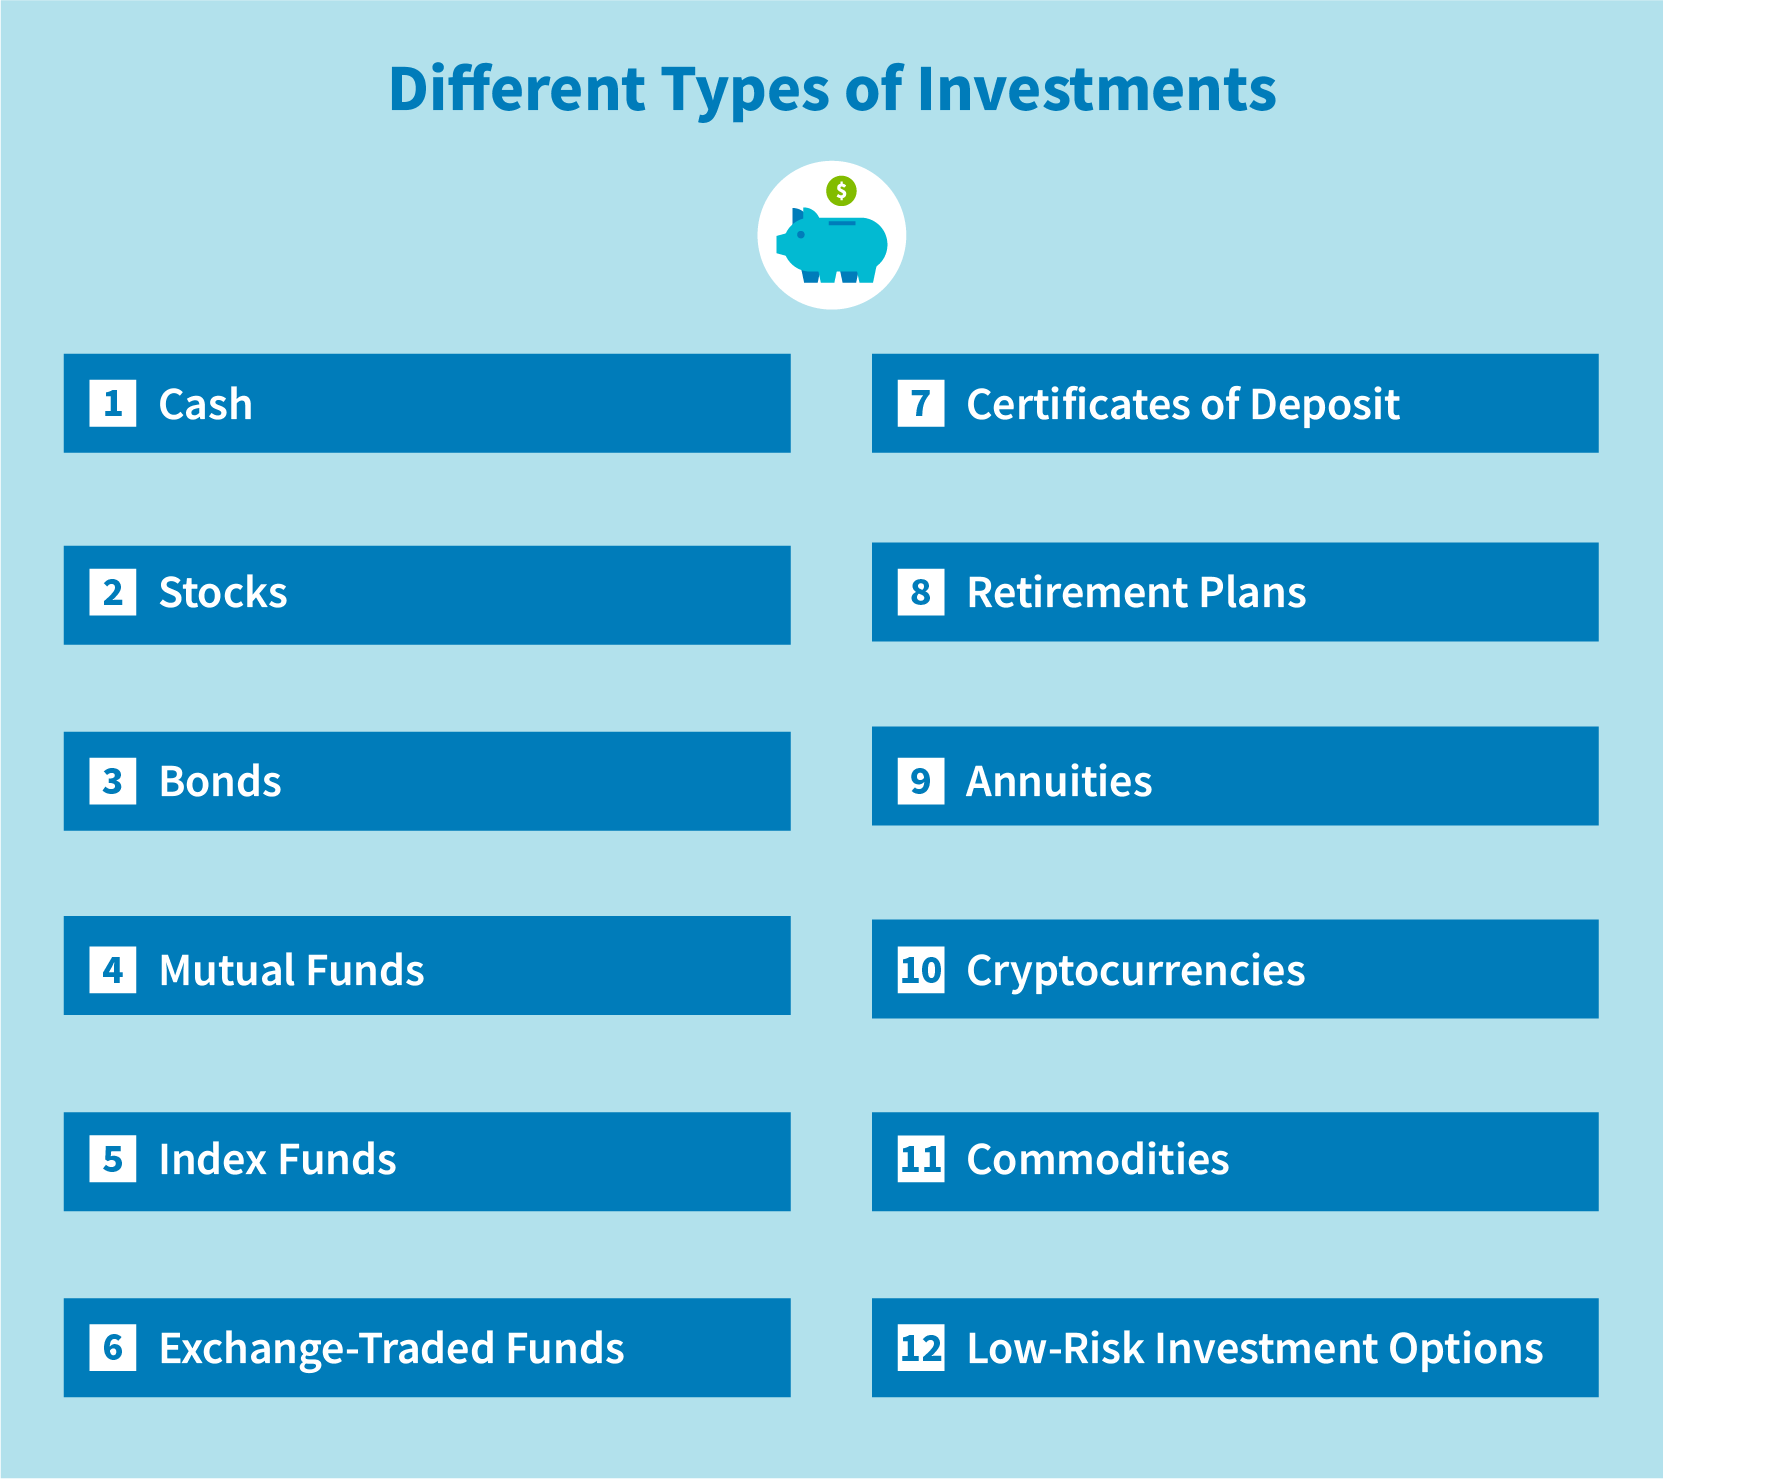 Different types of investments: cash, stocks, bonds, mutual funds, index funds, exchange-traded funds, certificates of deposit, retirement plans, annuities, cryptocurrencies, commodities, low-risk investment options.